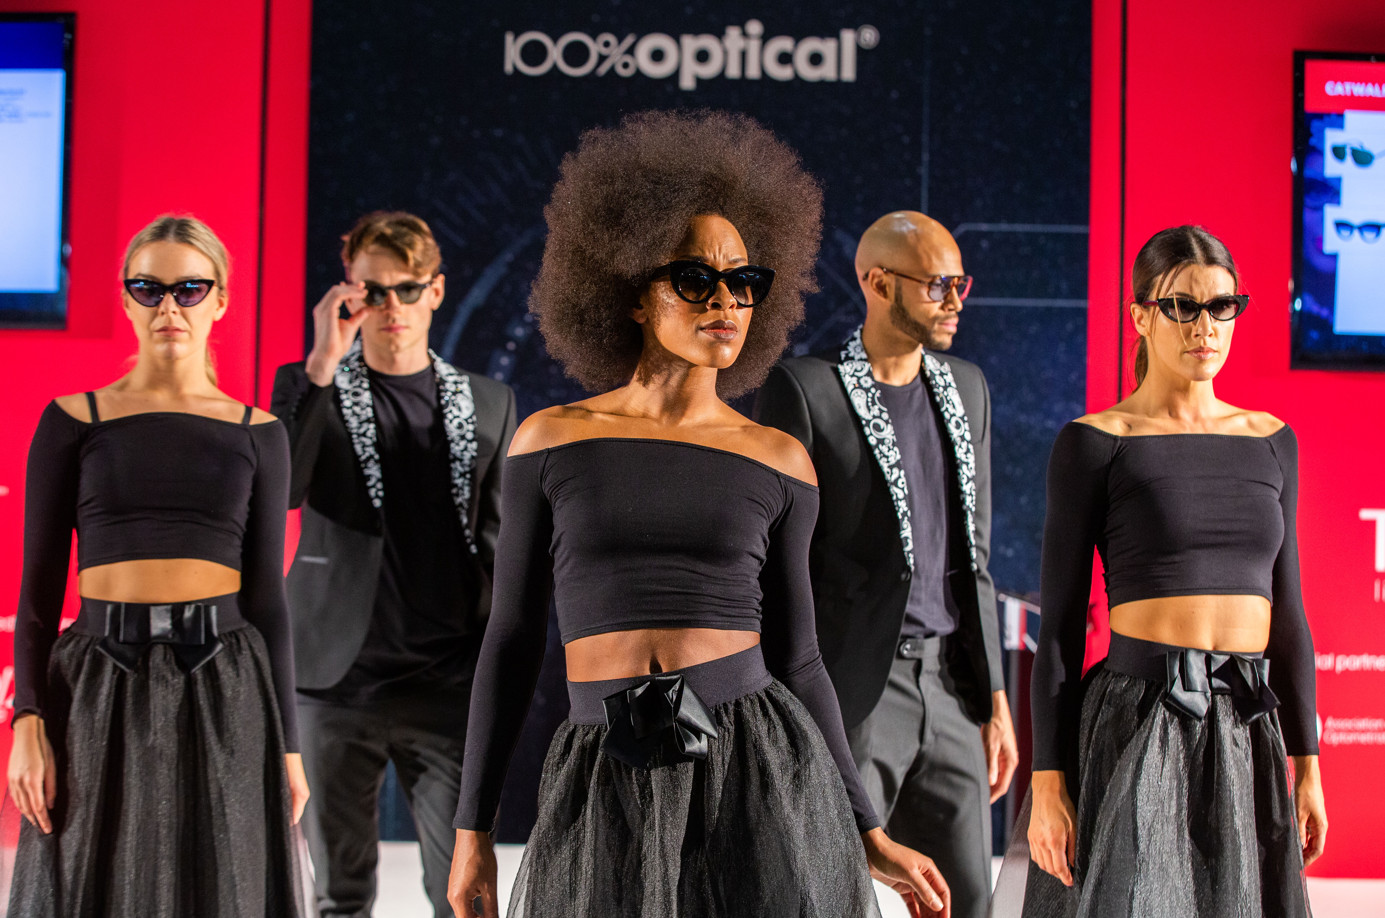 Largest optical show returns to london